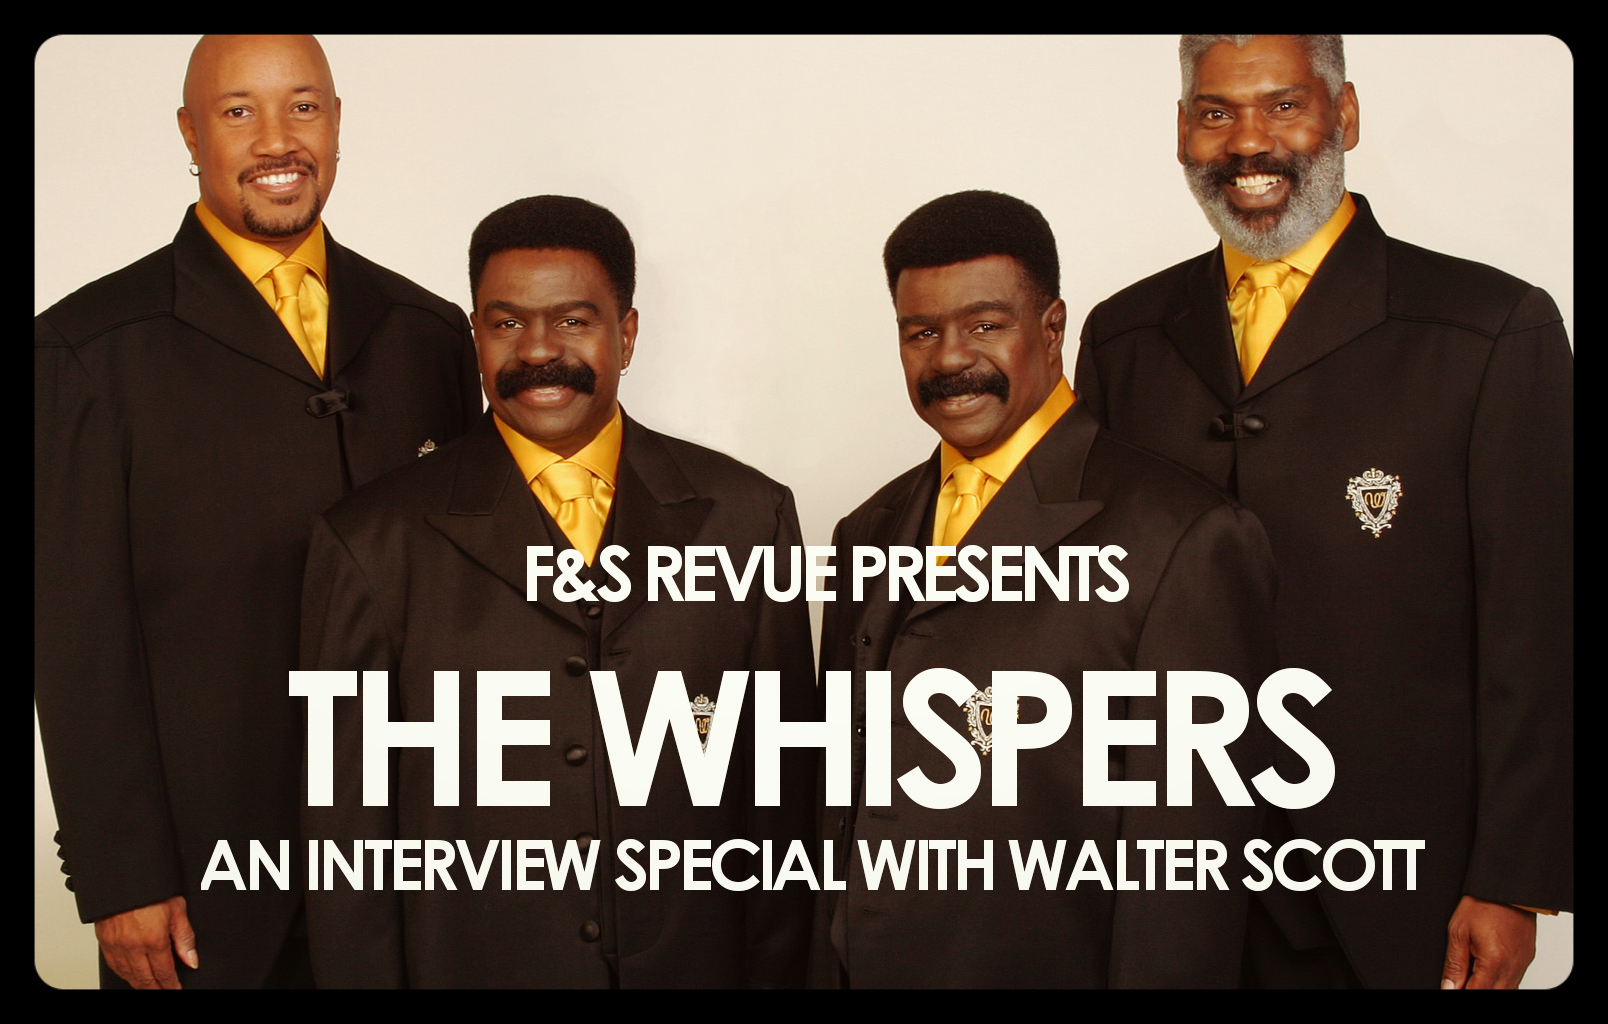 Whispers Promo_Fotor